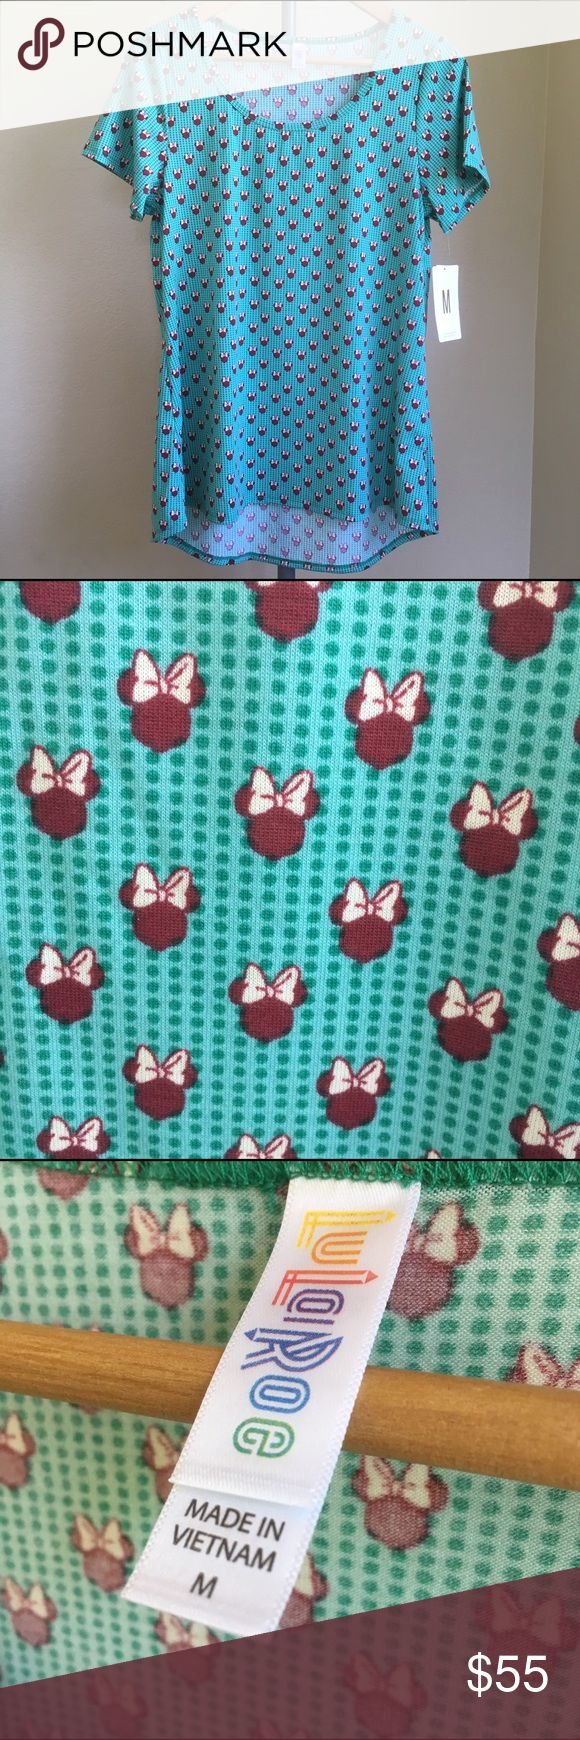 LulaRoe Disney Classic T Minnie Mouse LulaRoe Disney Classic T. Brand new with tags, medium sized shirt. Soft and comfy material. Light blue/green color with maroon colored Minnie Mouse heads. LuLaRoe Tops Tees - Short Sleeve